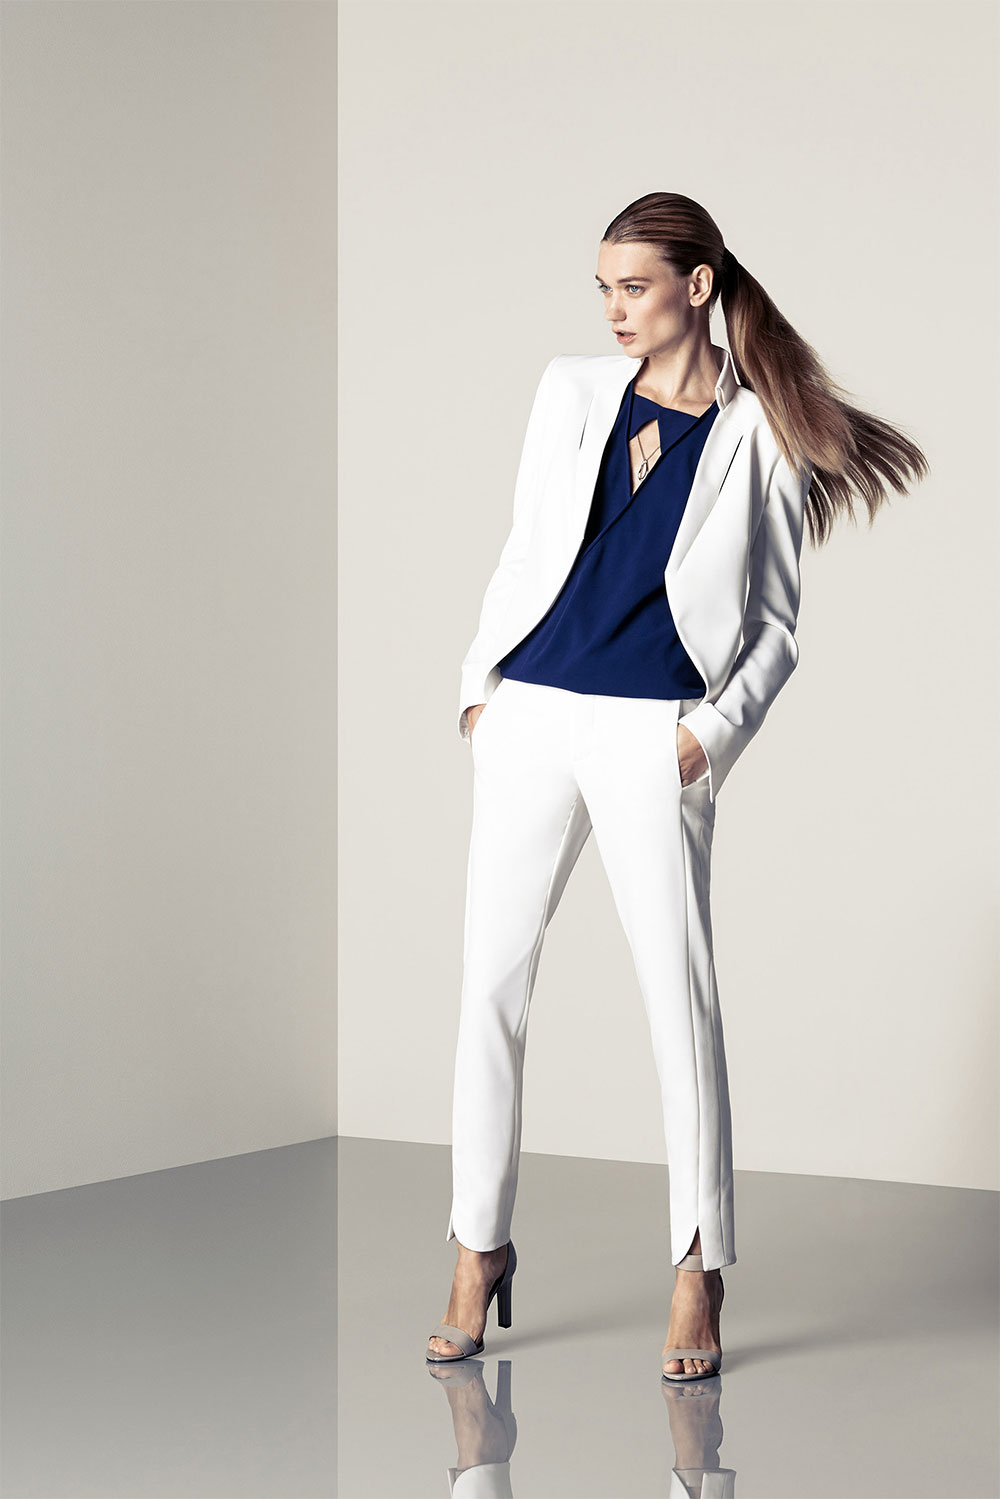 pant suit office outfit